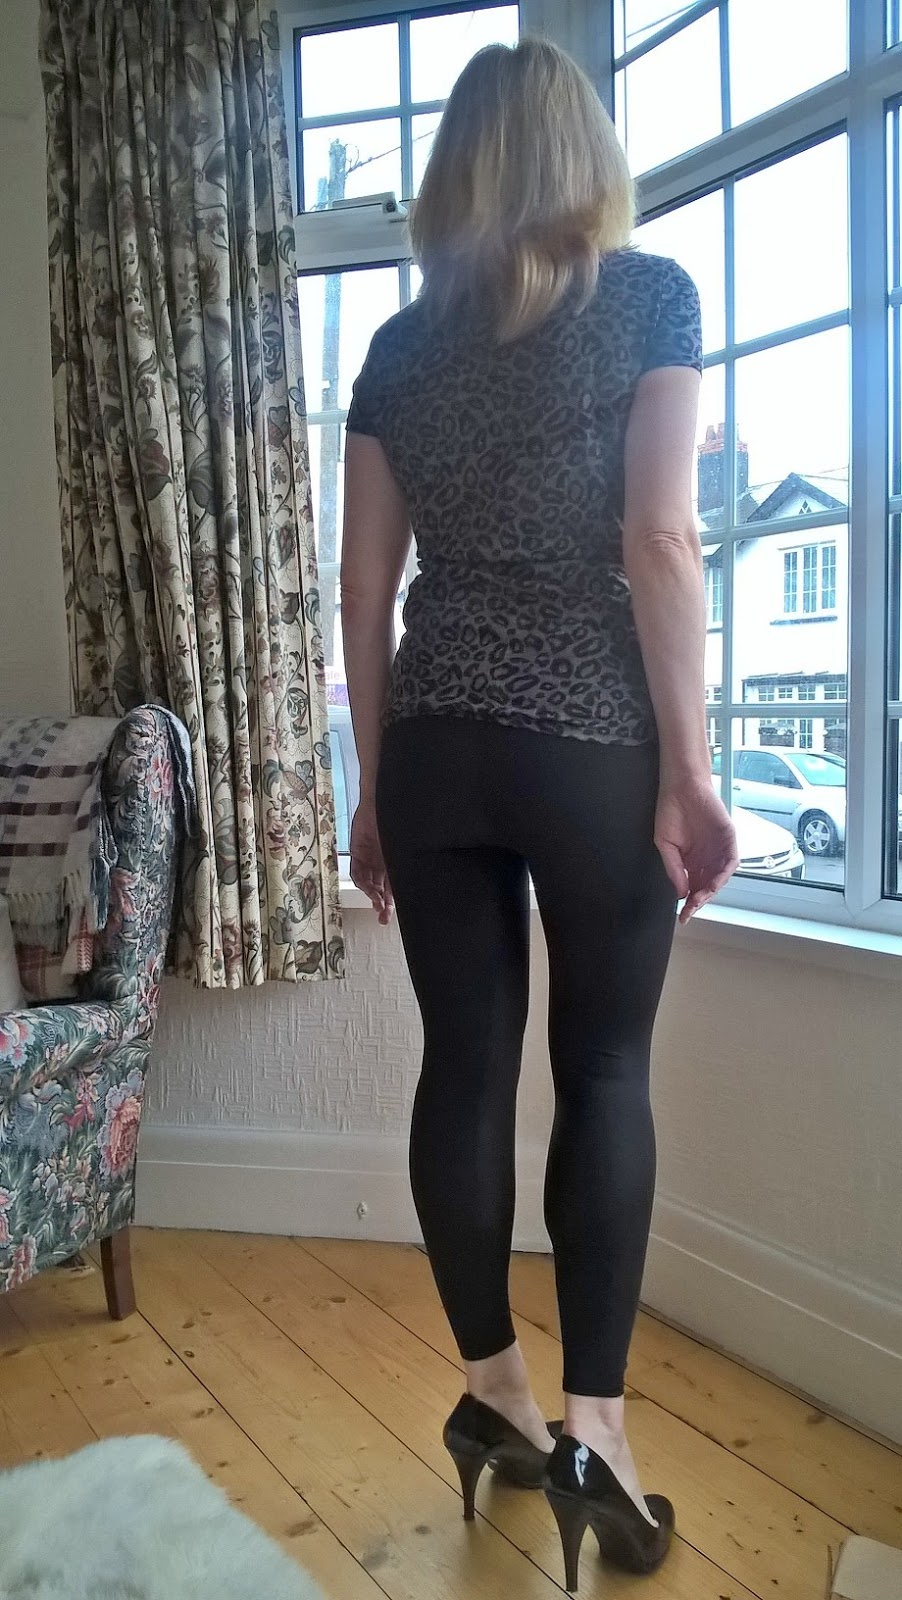 Linda Hobbis wearing Pertz leggings - rear shot